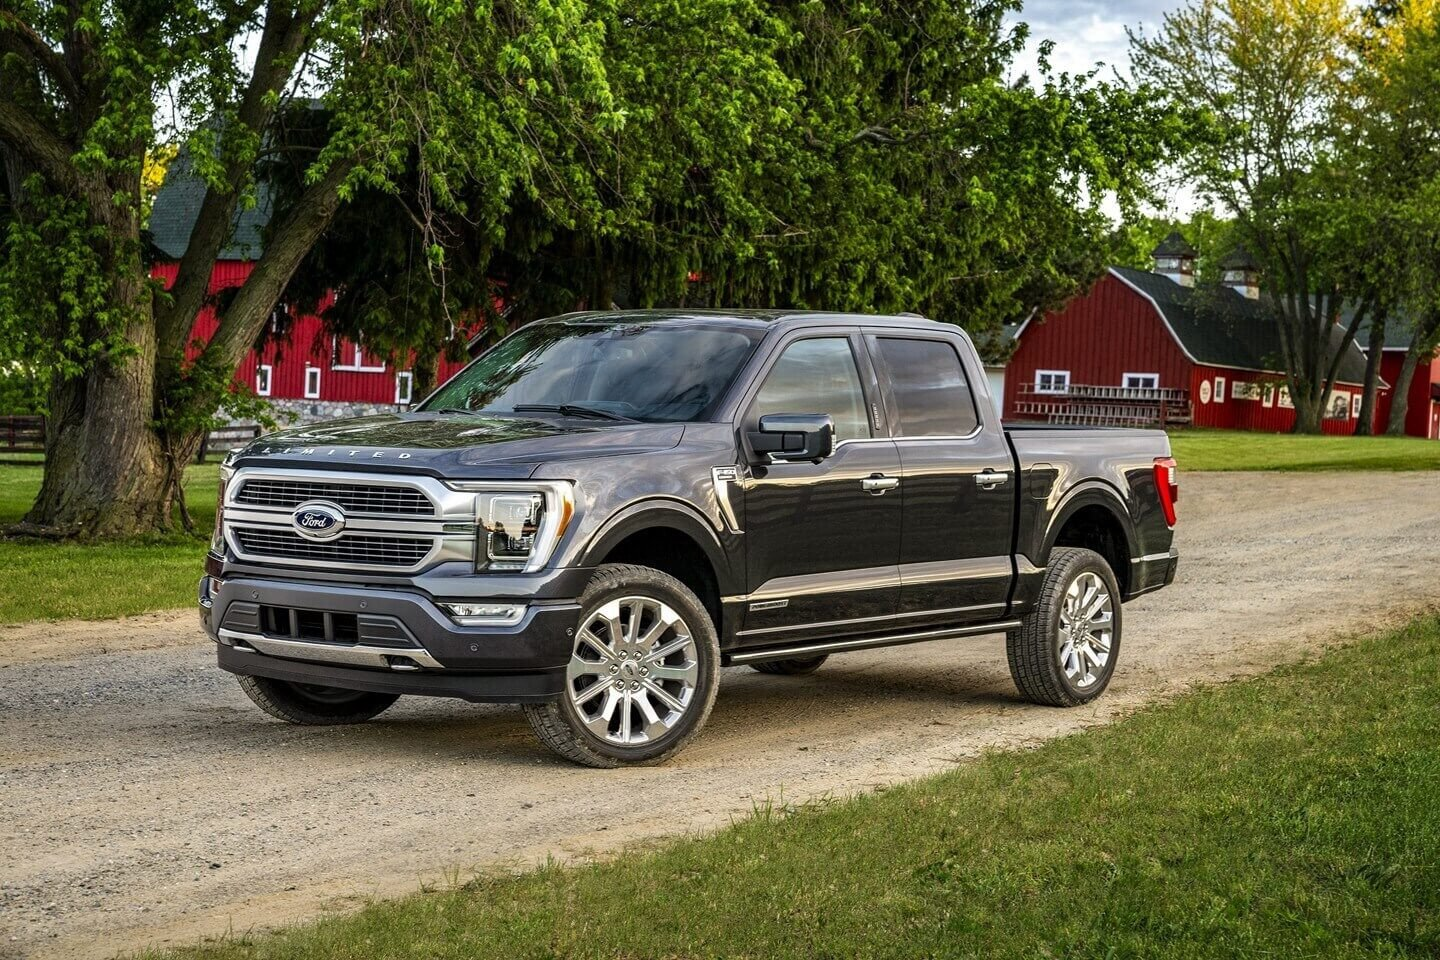 What is the Ford A plan? - Ford F-150 - Mullinax Ford of Central Florida